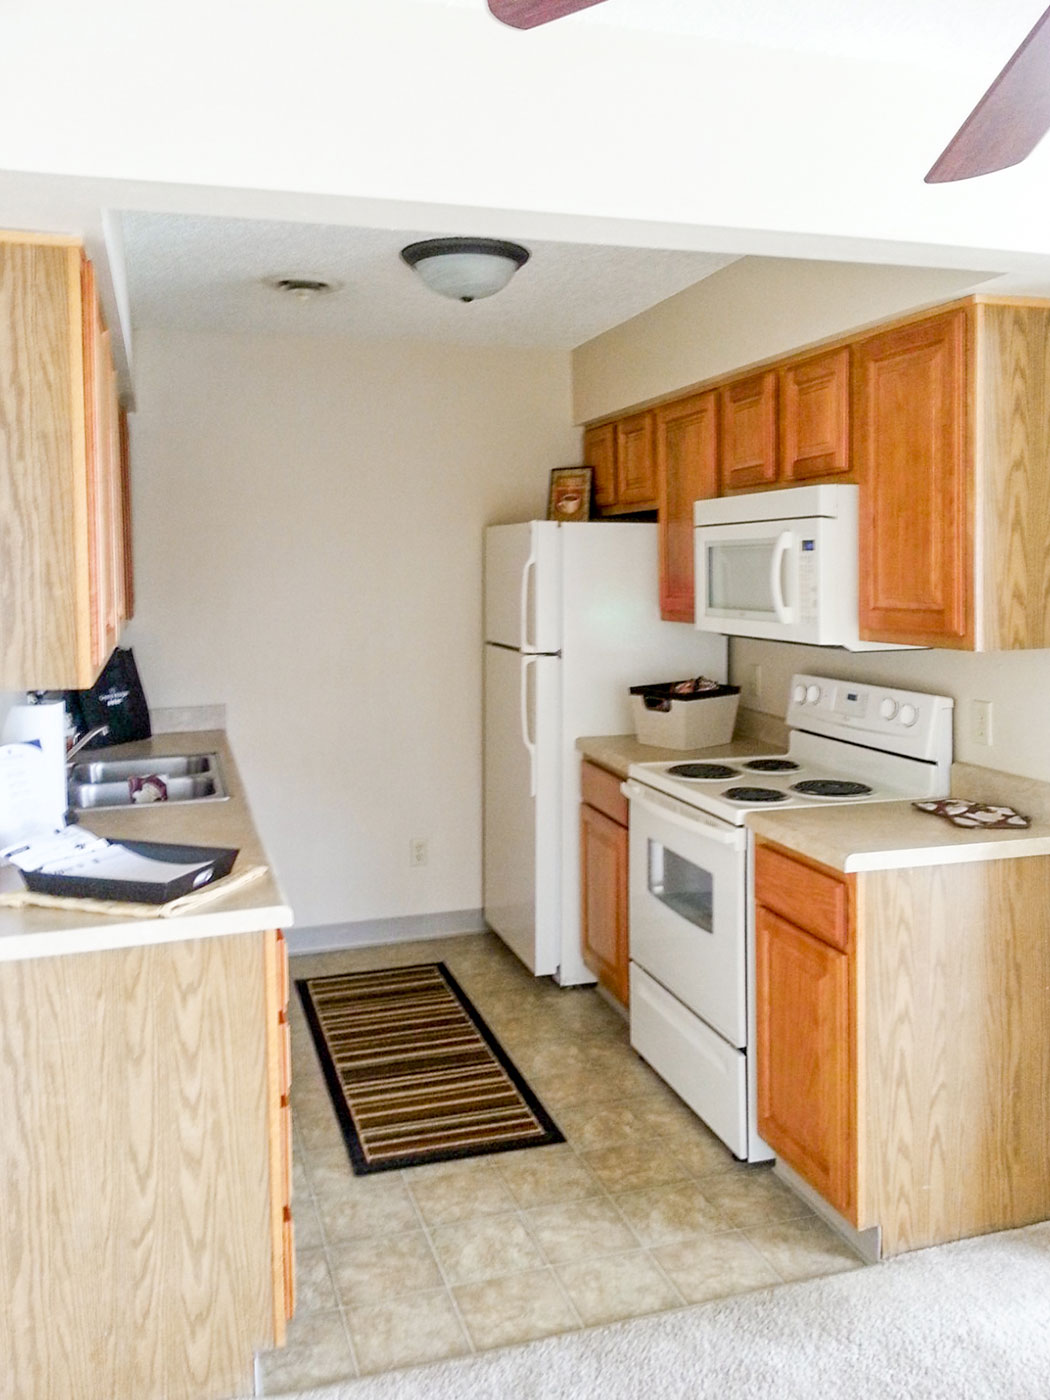 Kitchen at Crystal Ridge Apartments in Davenport, IA.